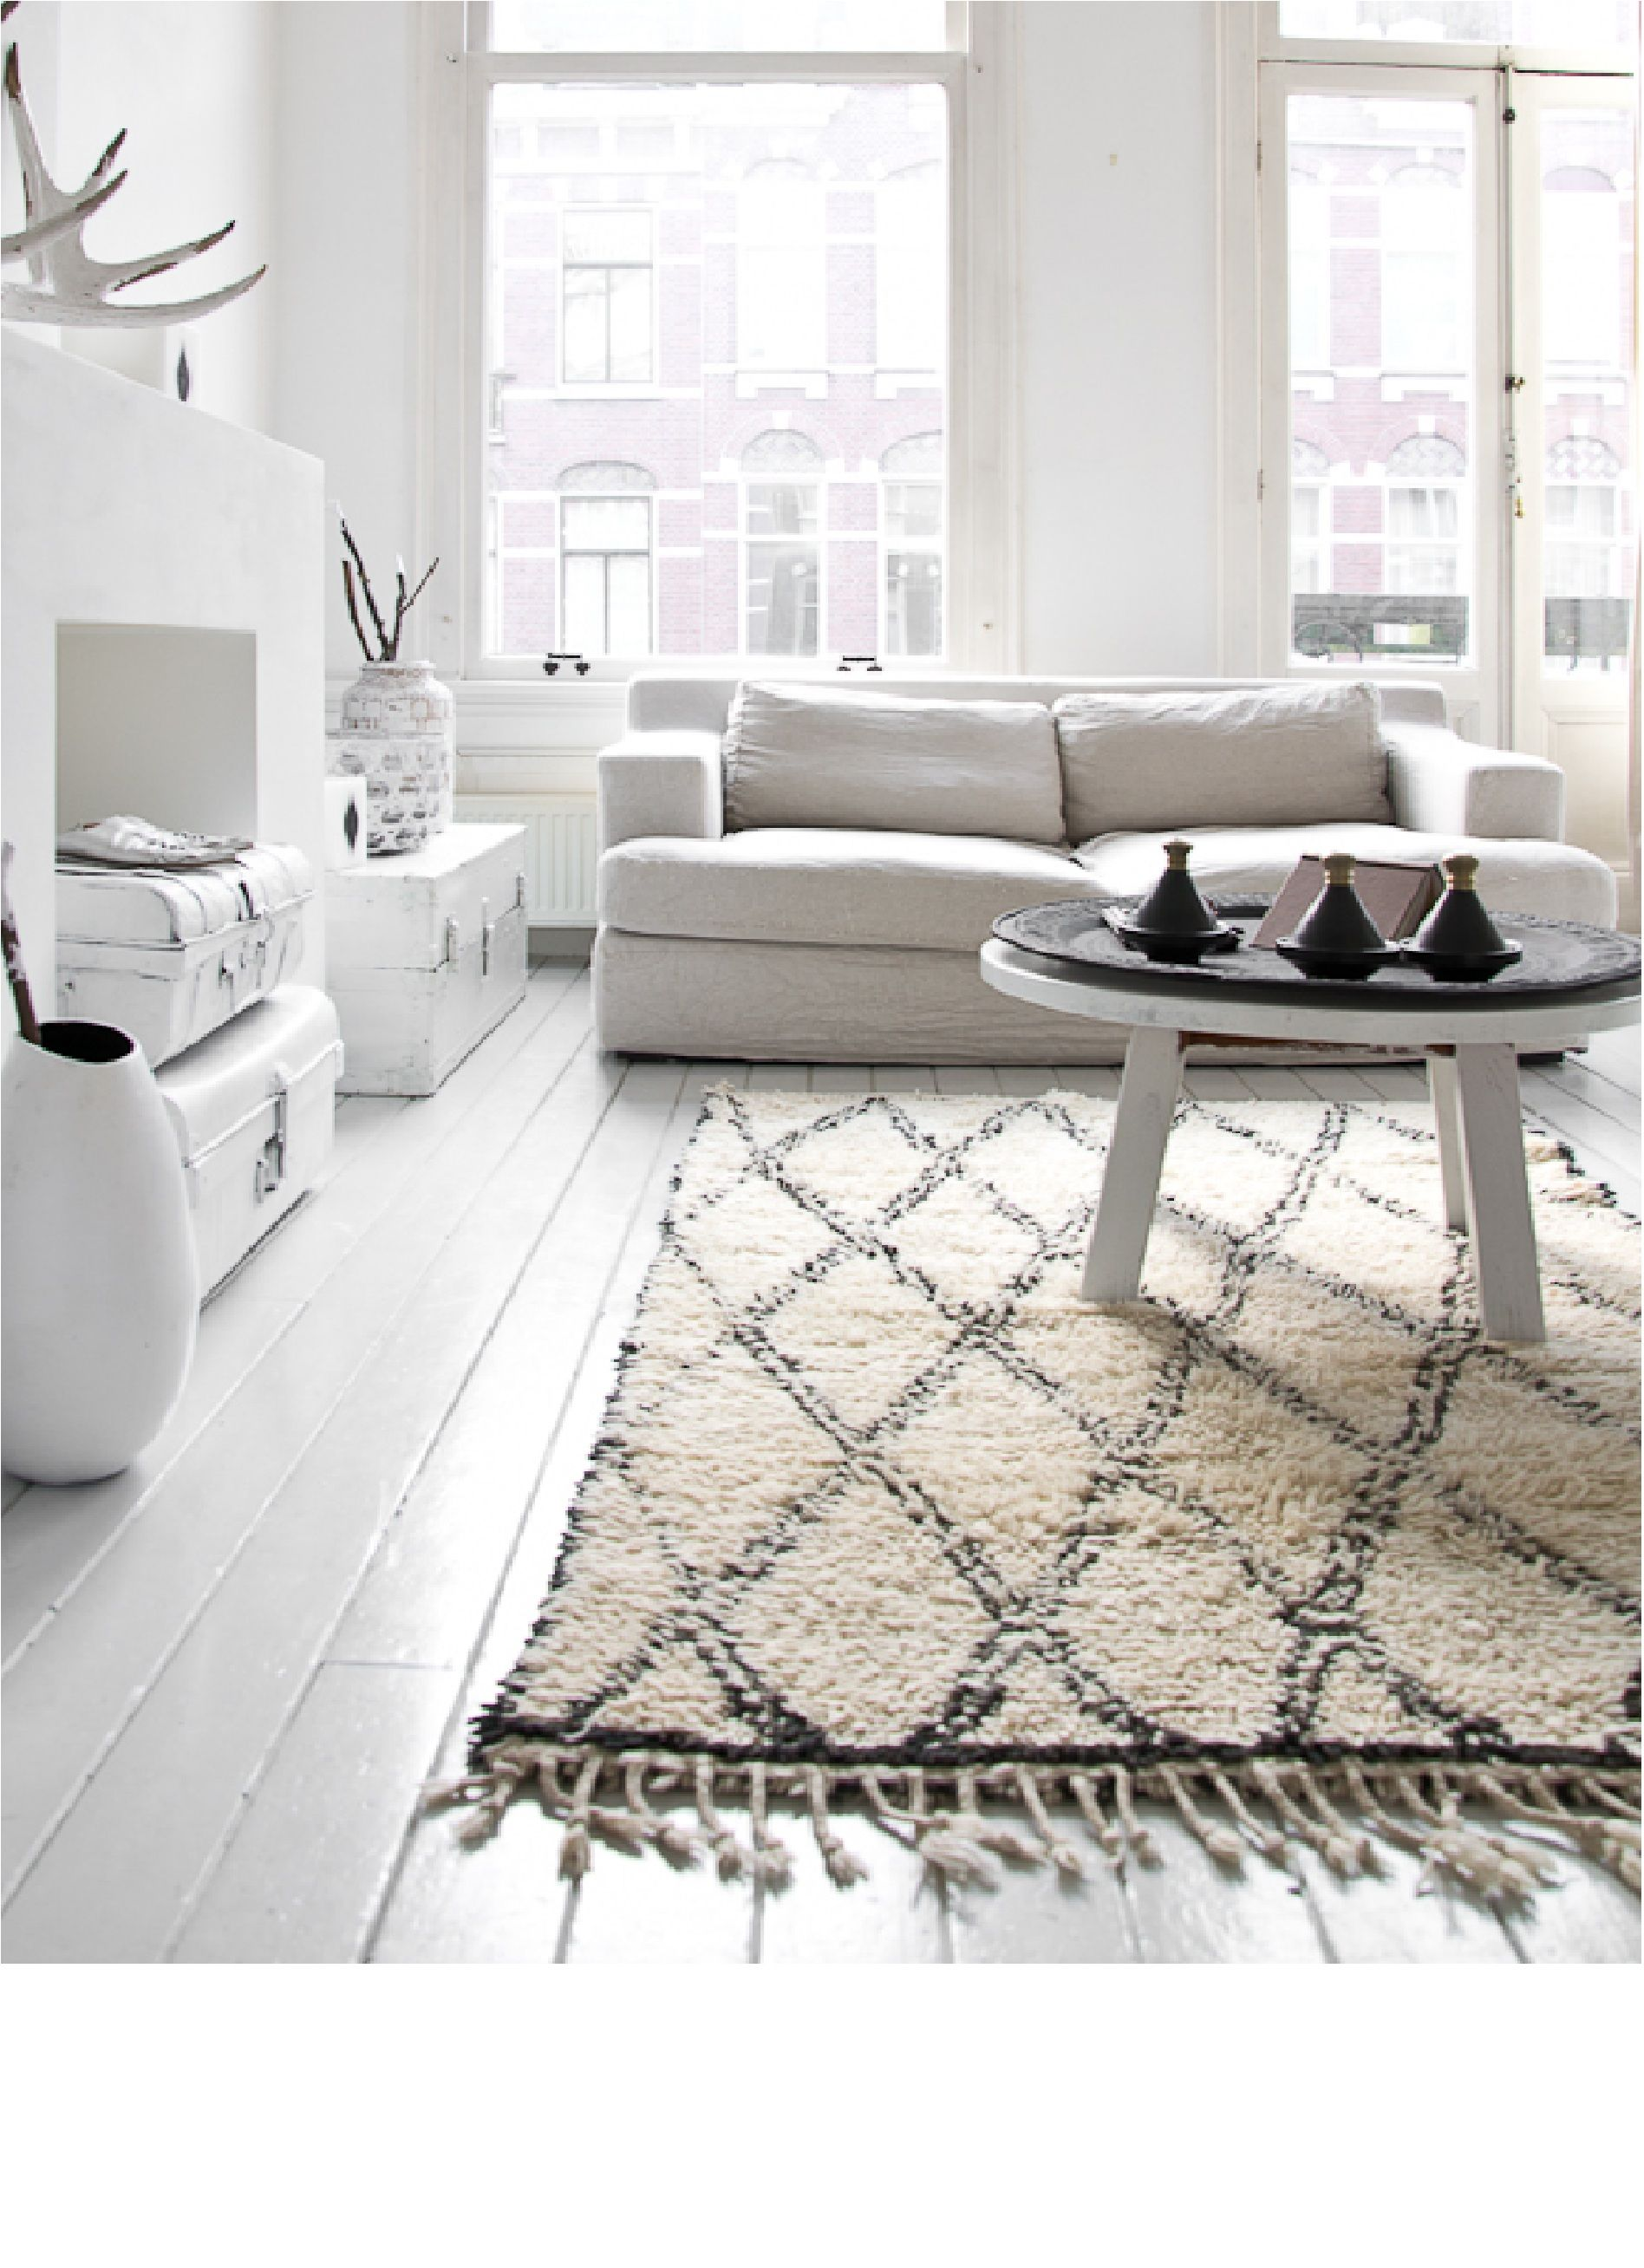 House Scandinavian, Moroccan Inspired